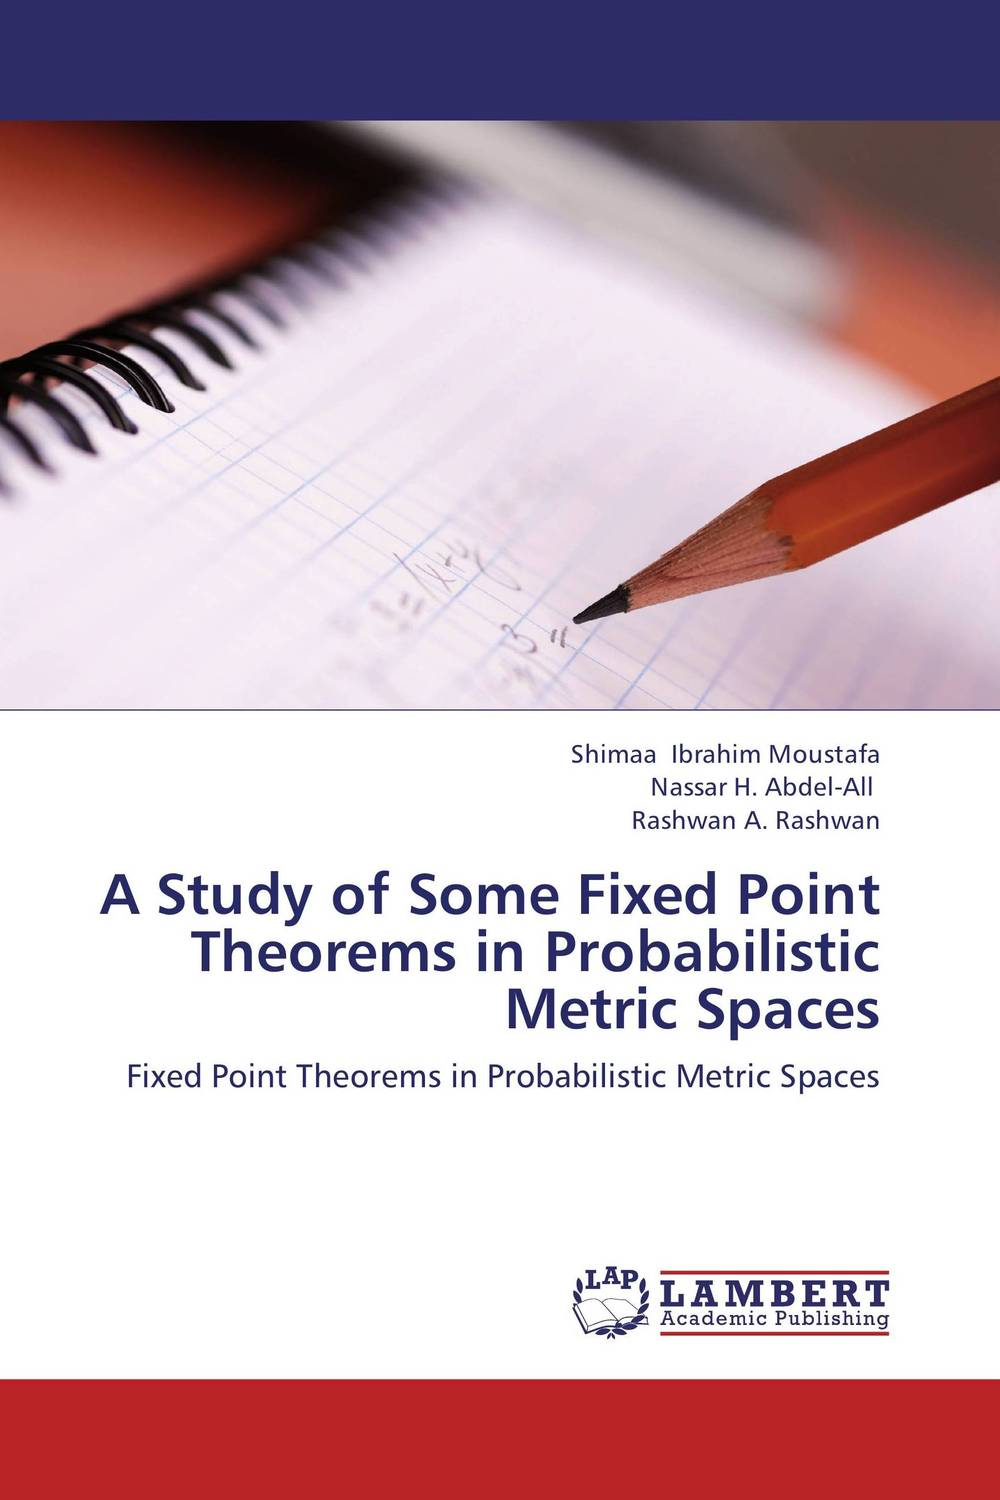 A Study of Some Fixed Point Theorems in Probabilistic Metric Spaces nirmal kumar singh and ravi prakash dubey fixed point theorems in topological spaces with application to fratal